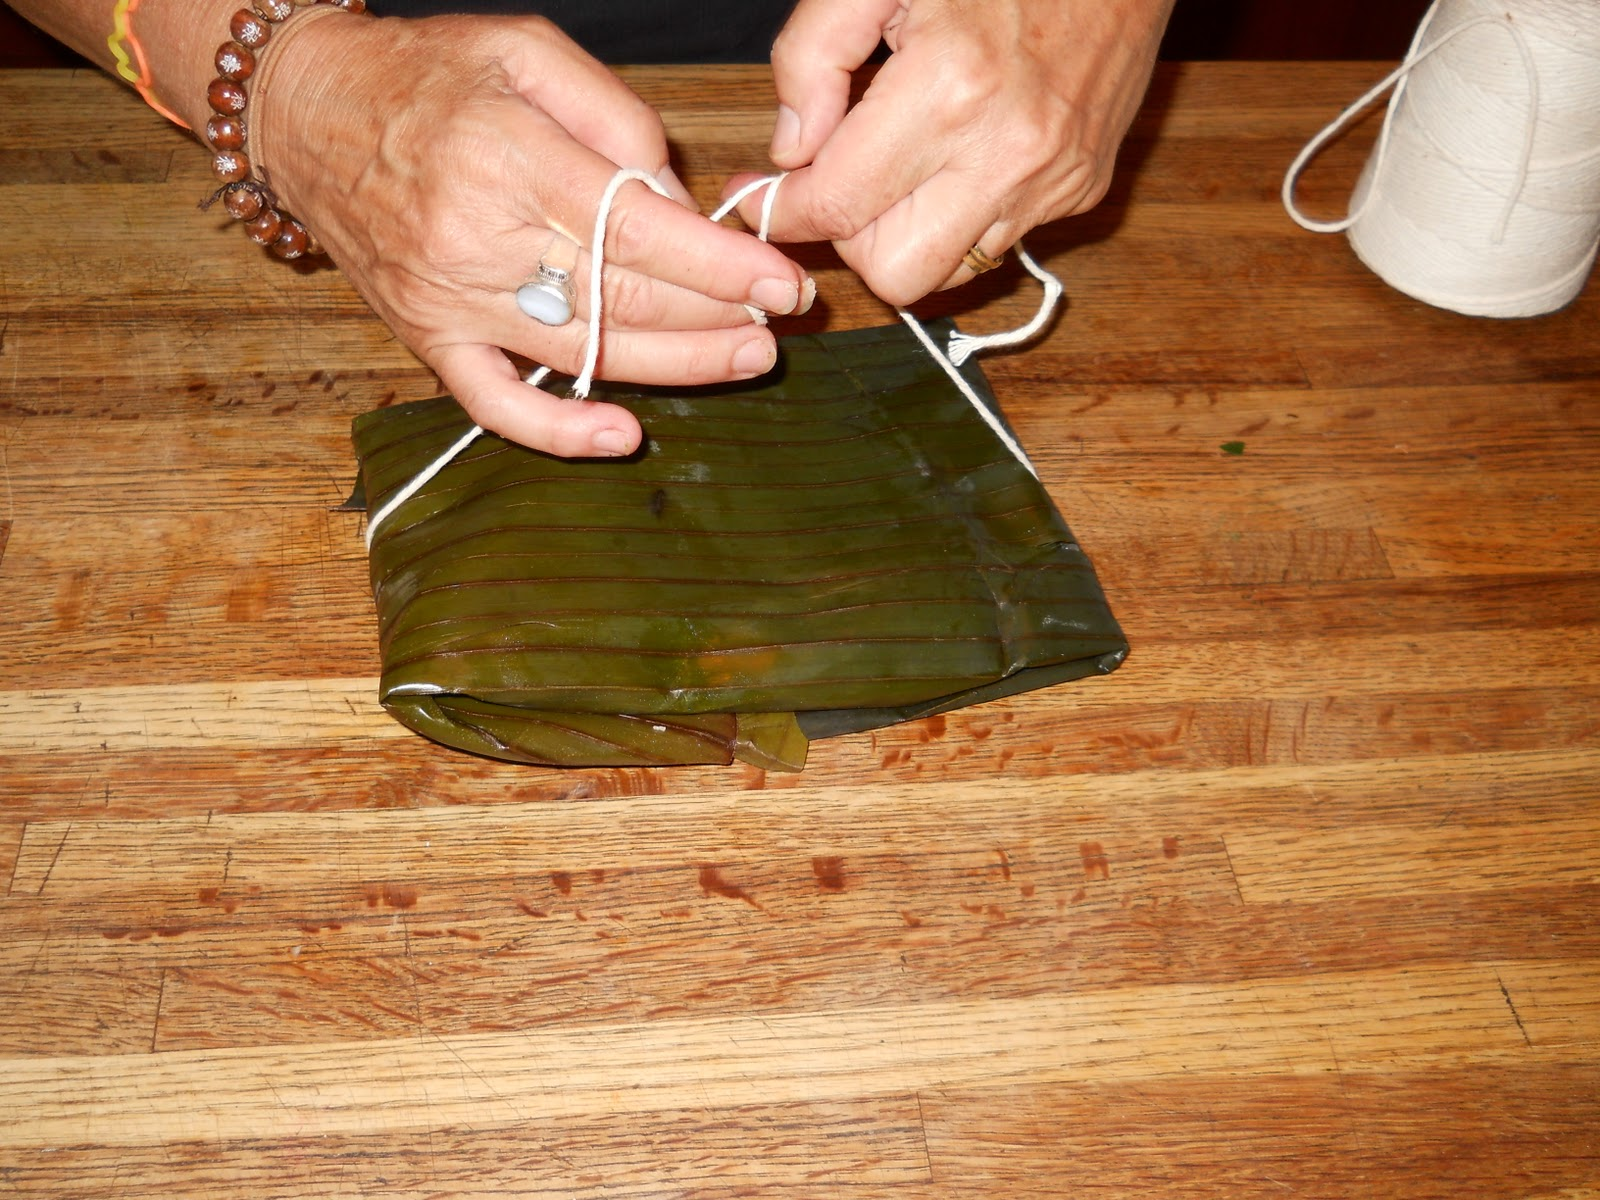 ... de Poisson (Fish in Banana-Leaf) and Fufu - Up Next, Costa Rica(NA